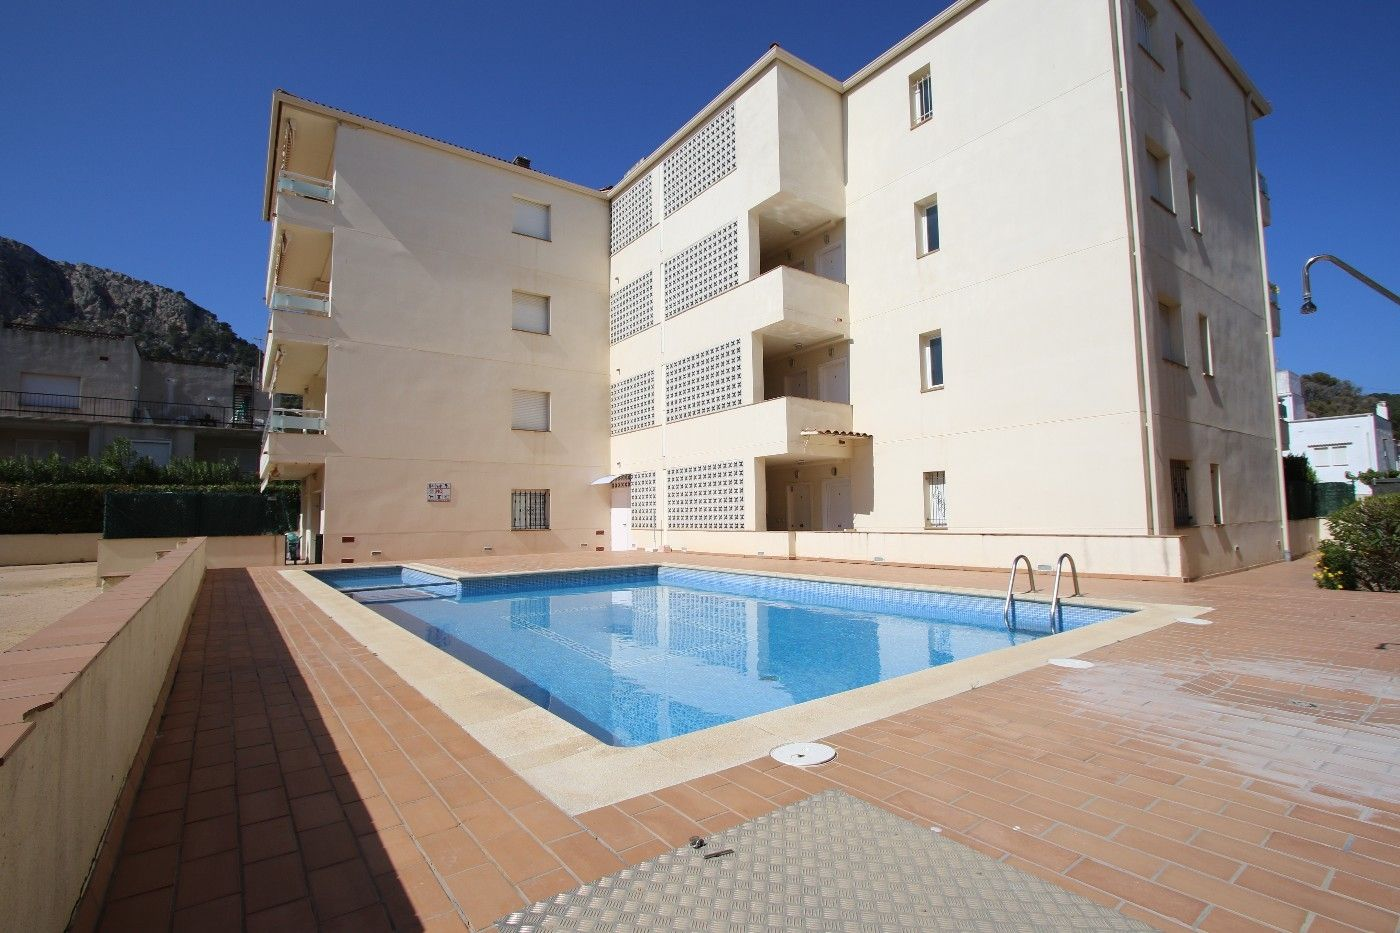 Apartment in Carrer guillem de montgri, 13 1. Vivienda a 100 m playa